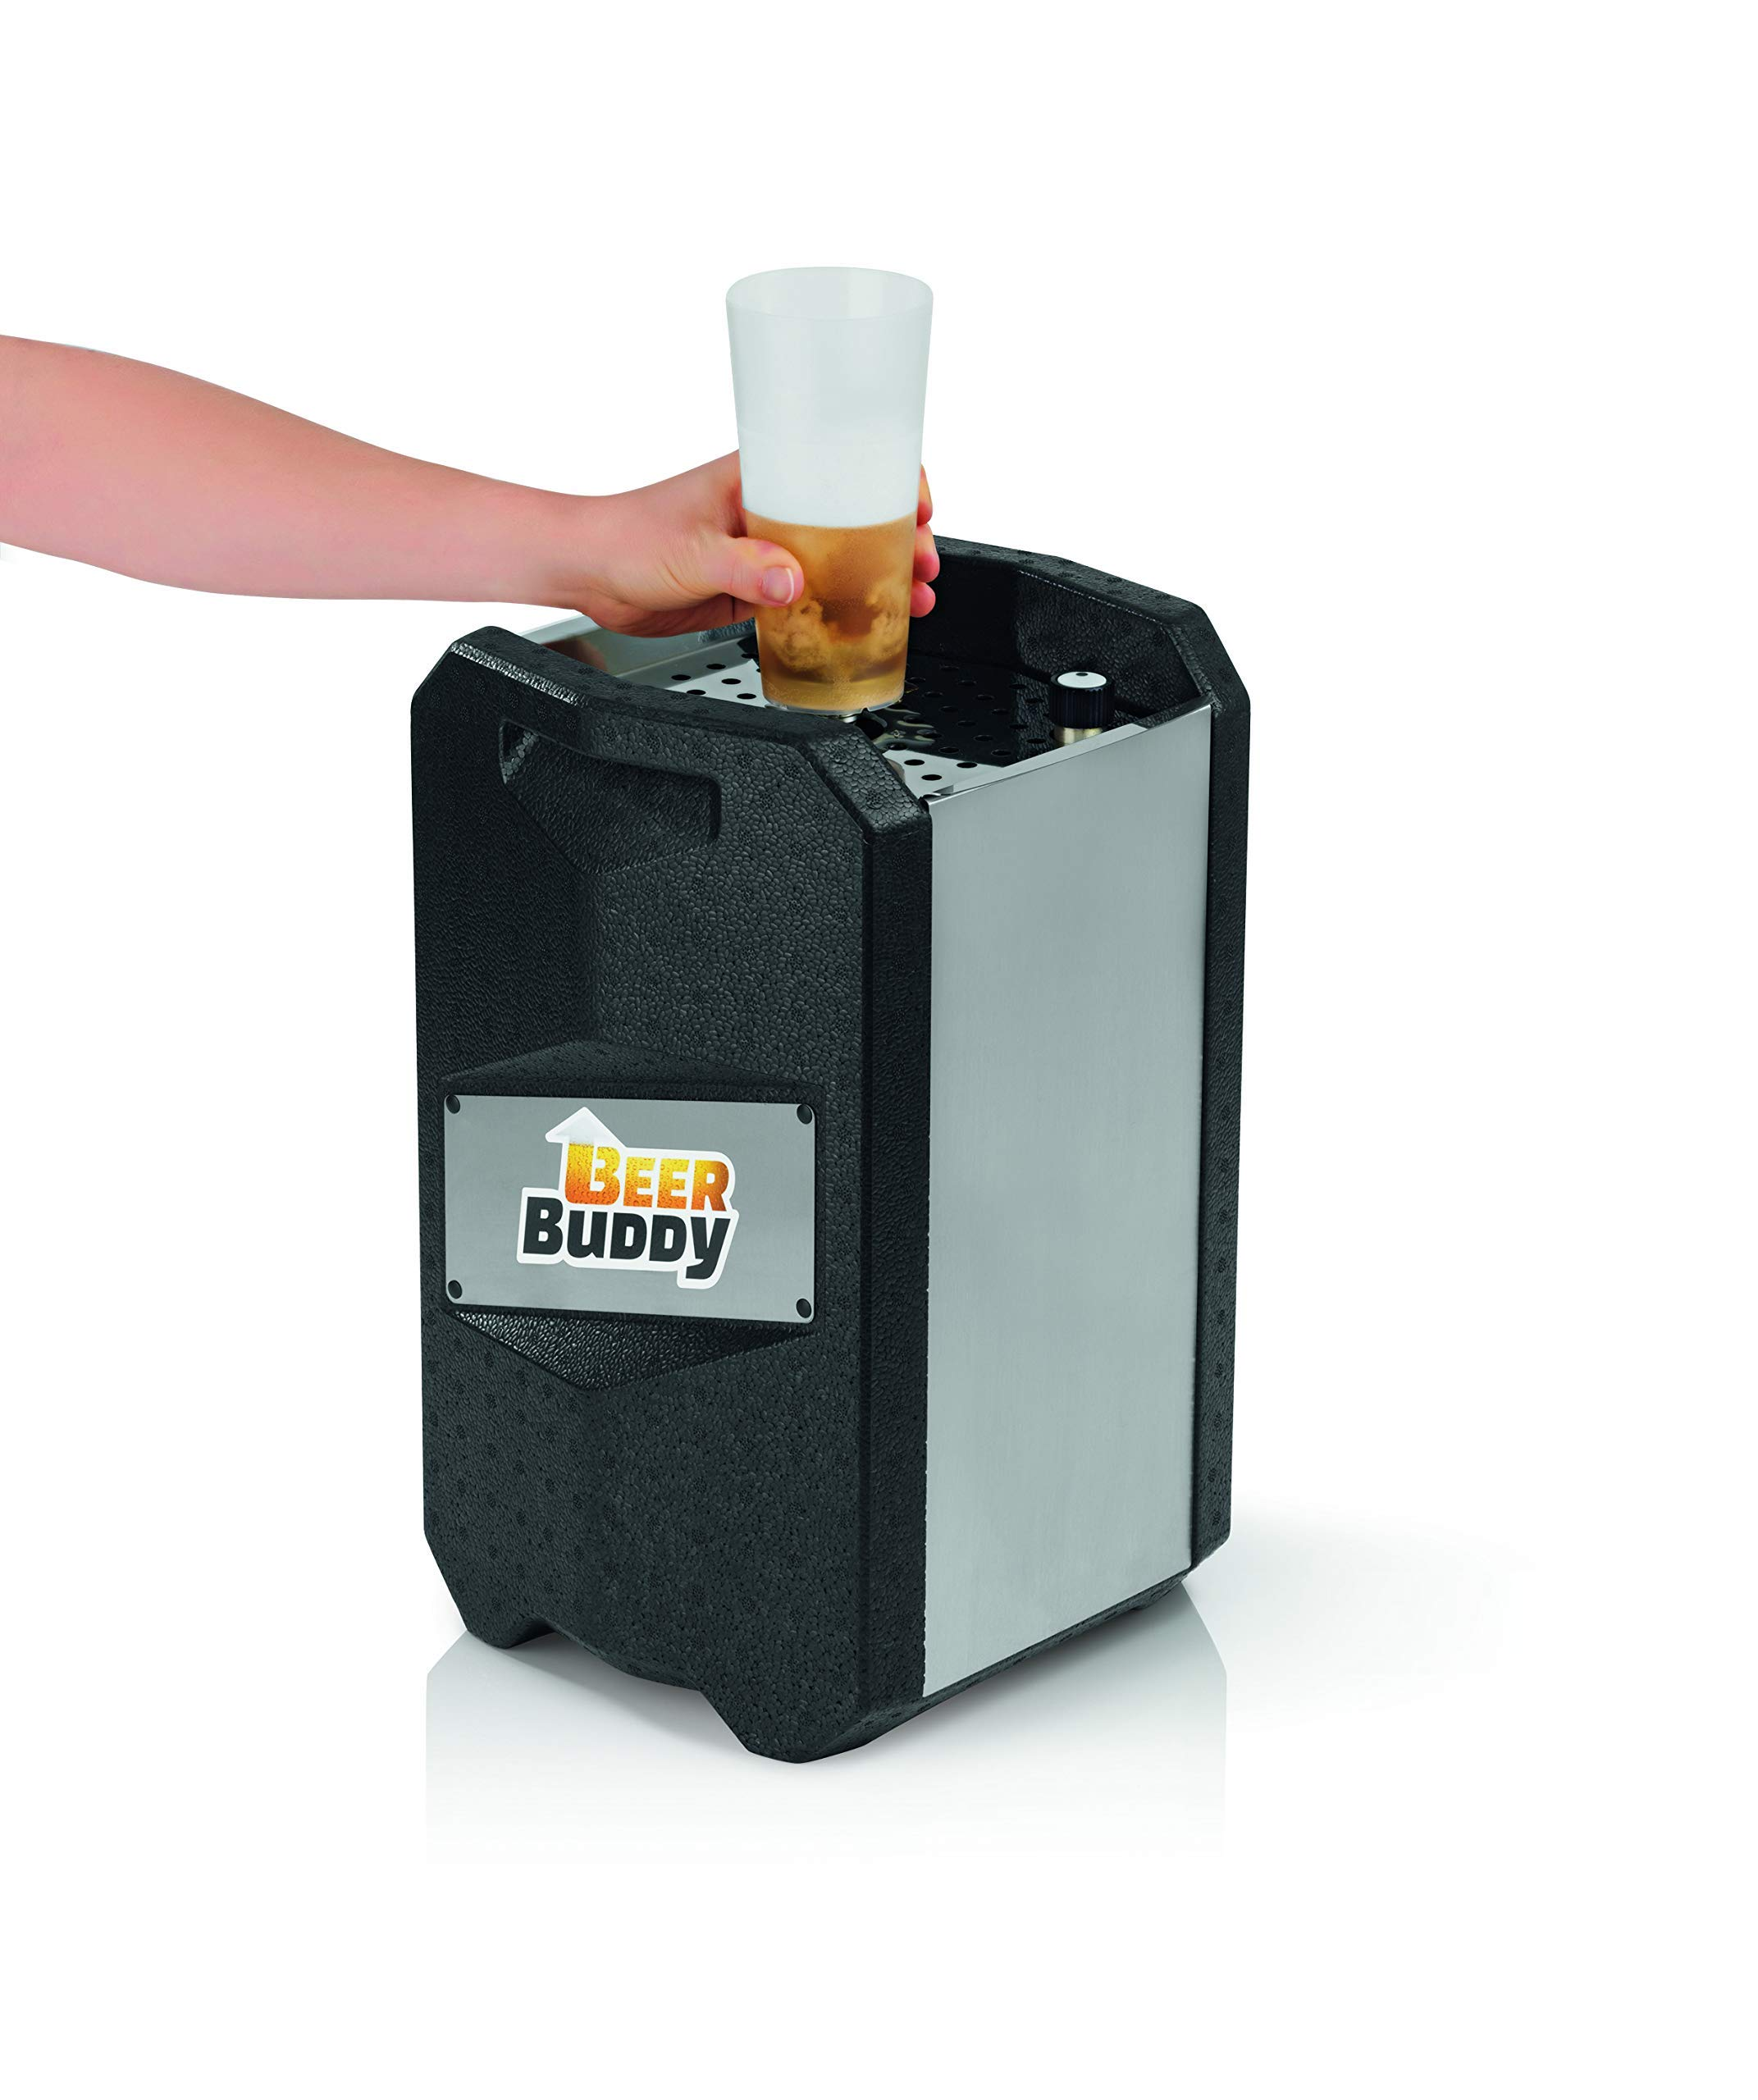 81oEVzlBFZL - Beer Buddy Version 2.0 latest version. Bottoms Up Beer Tap for 5 Litre Party Barrels